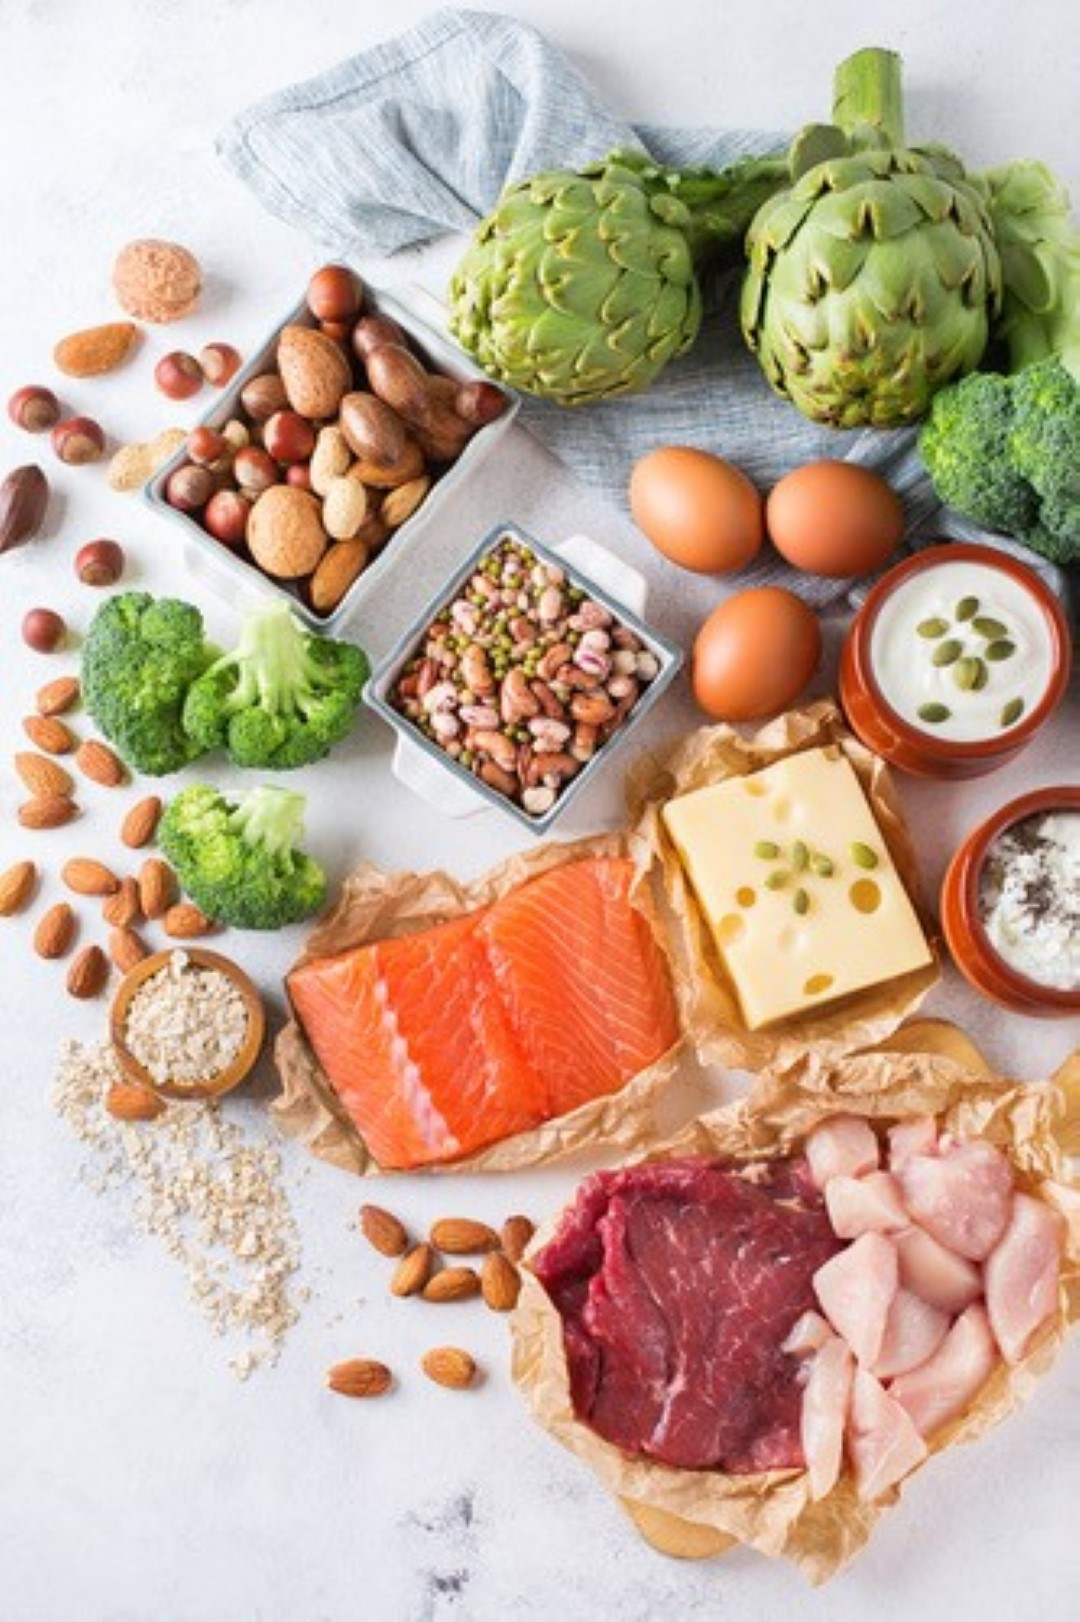 Proteins and weight loss